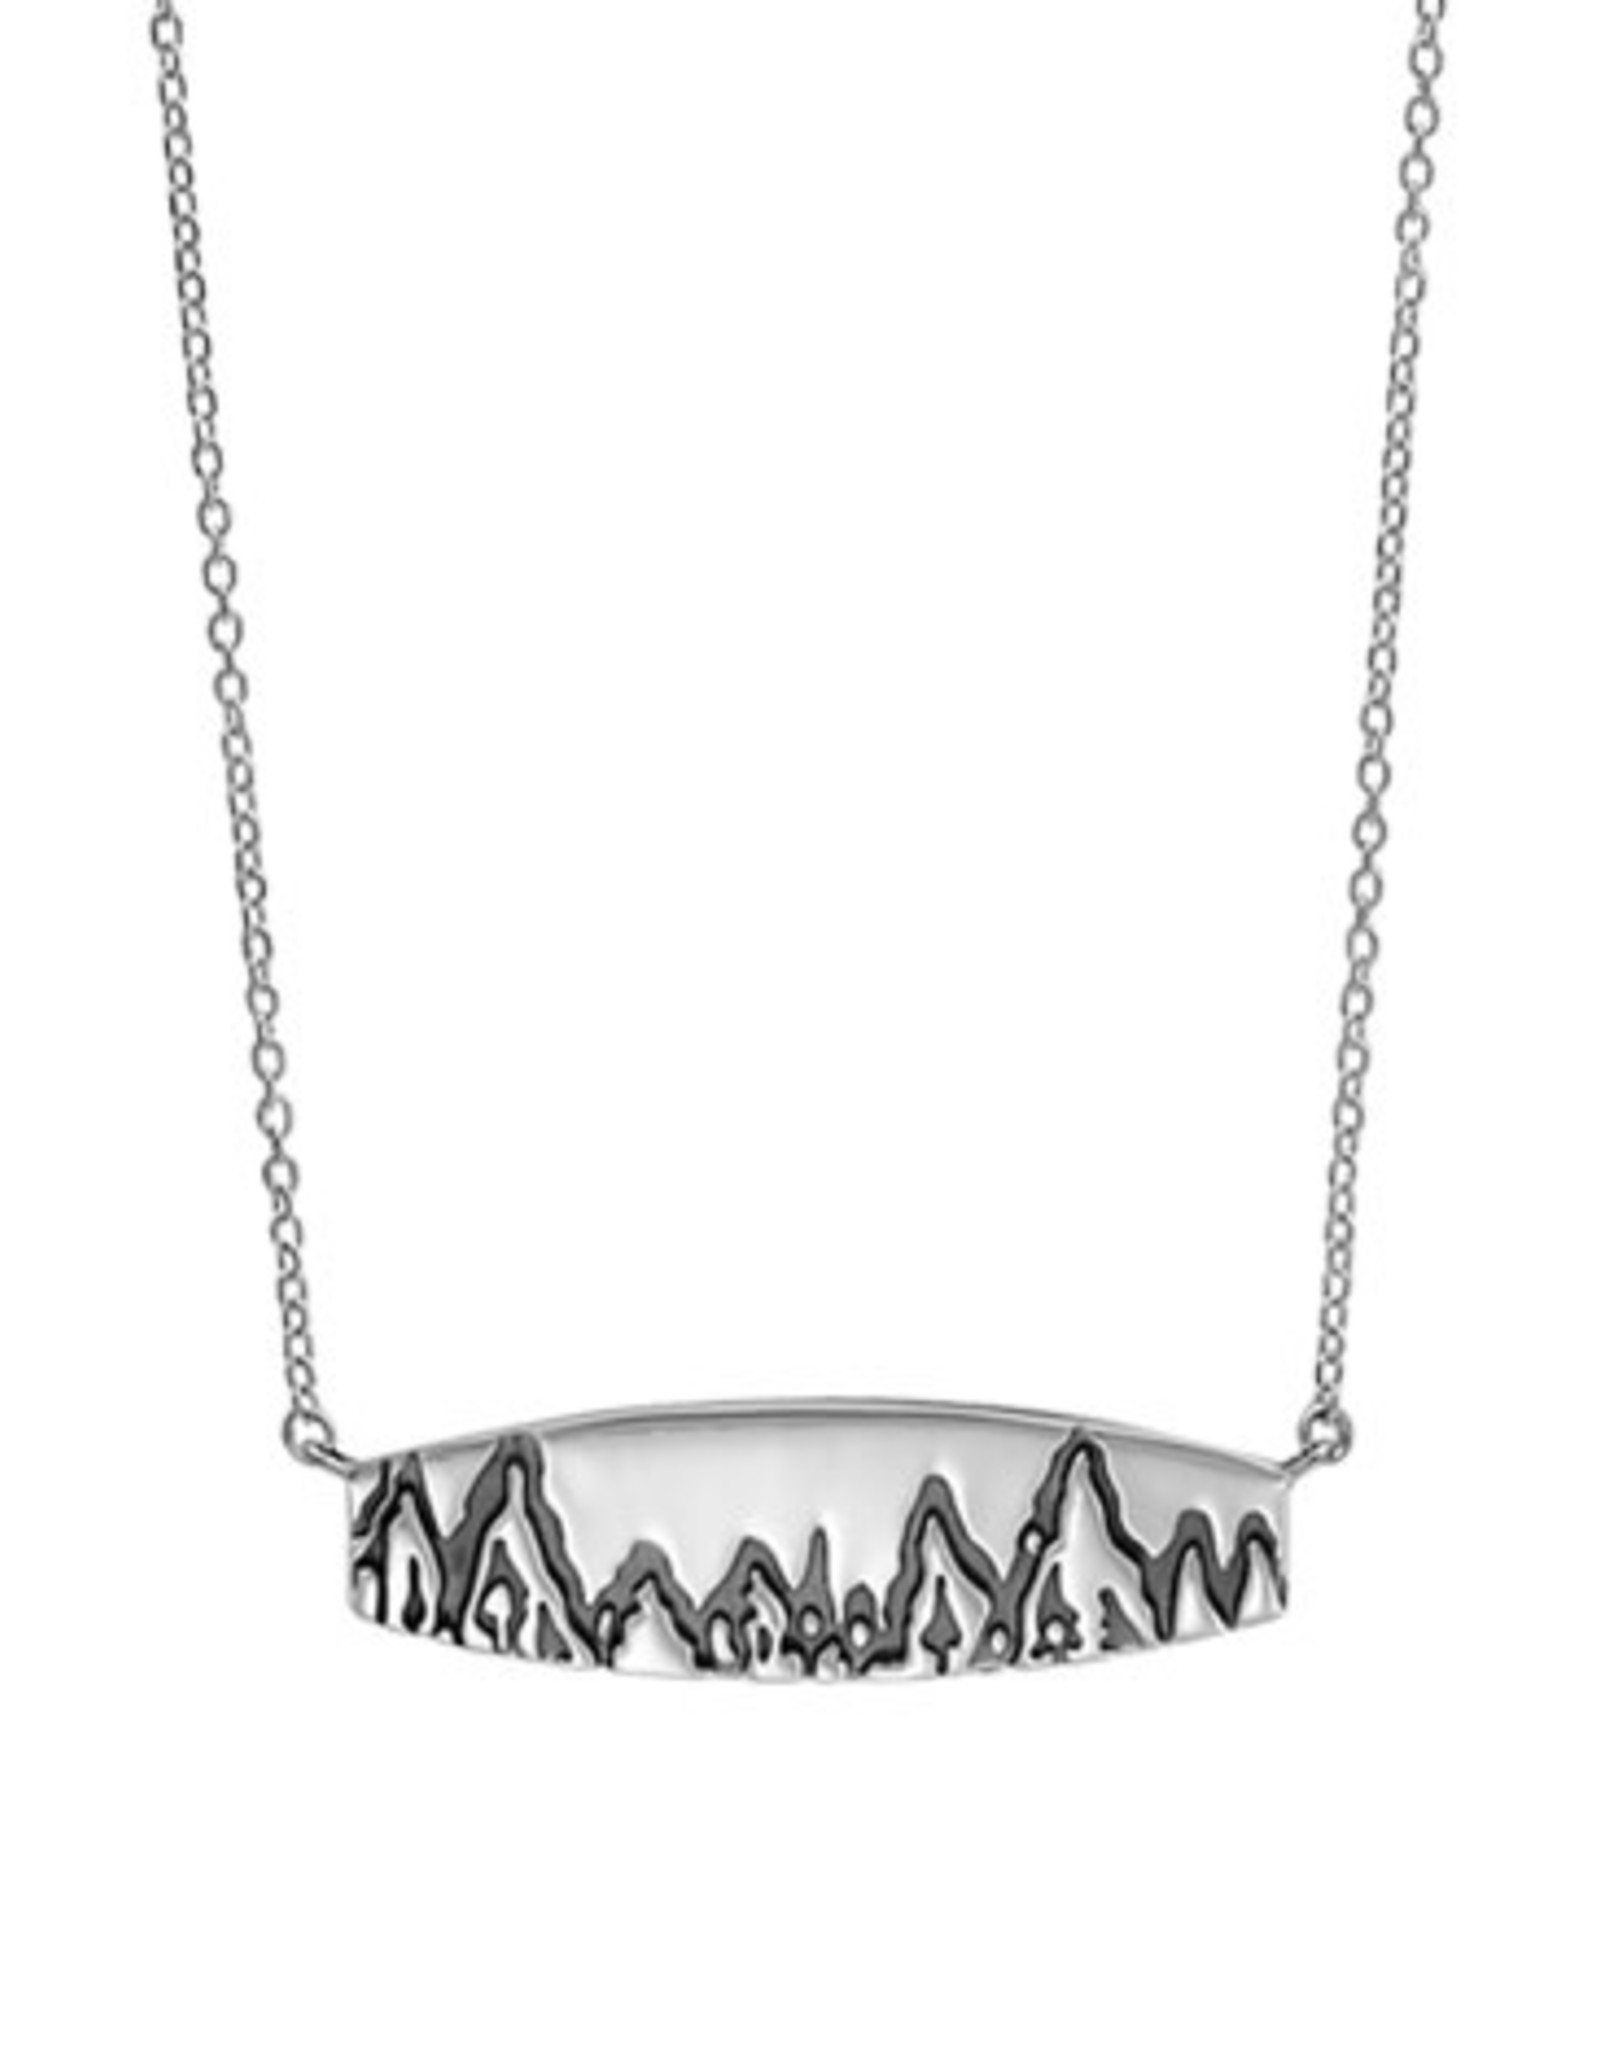 "Boma MOUNTAIN BAR NECKLACE 20"" SILVER"